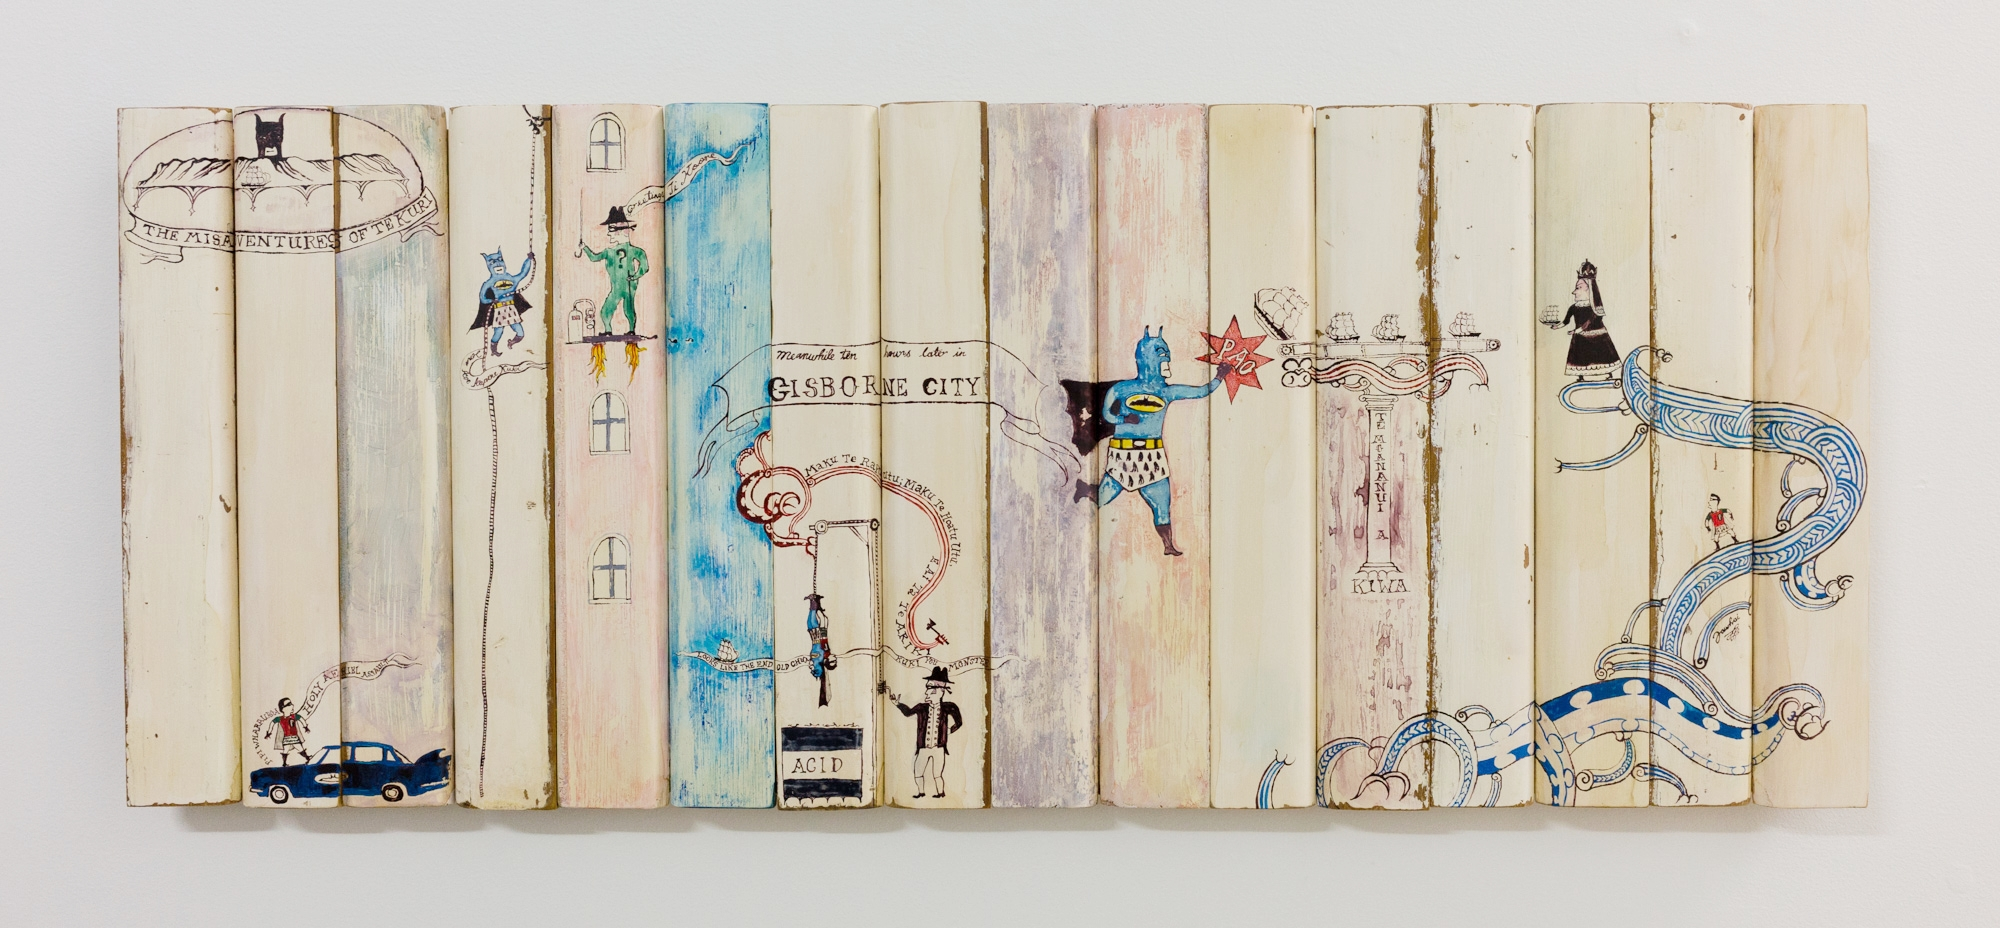 The Misadventures of Te Kuri 2016 Paint and whakairo using reclaimed wood 400 x 990 x 35mm    This work appropriates modern iconic pop culture as a metaphor that explores historical      and contemporary land and cultural issues concerning Tangata Whenua.